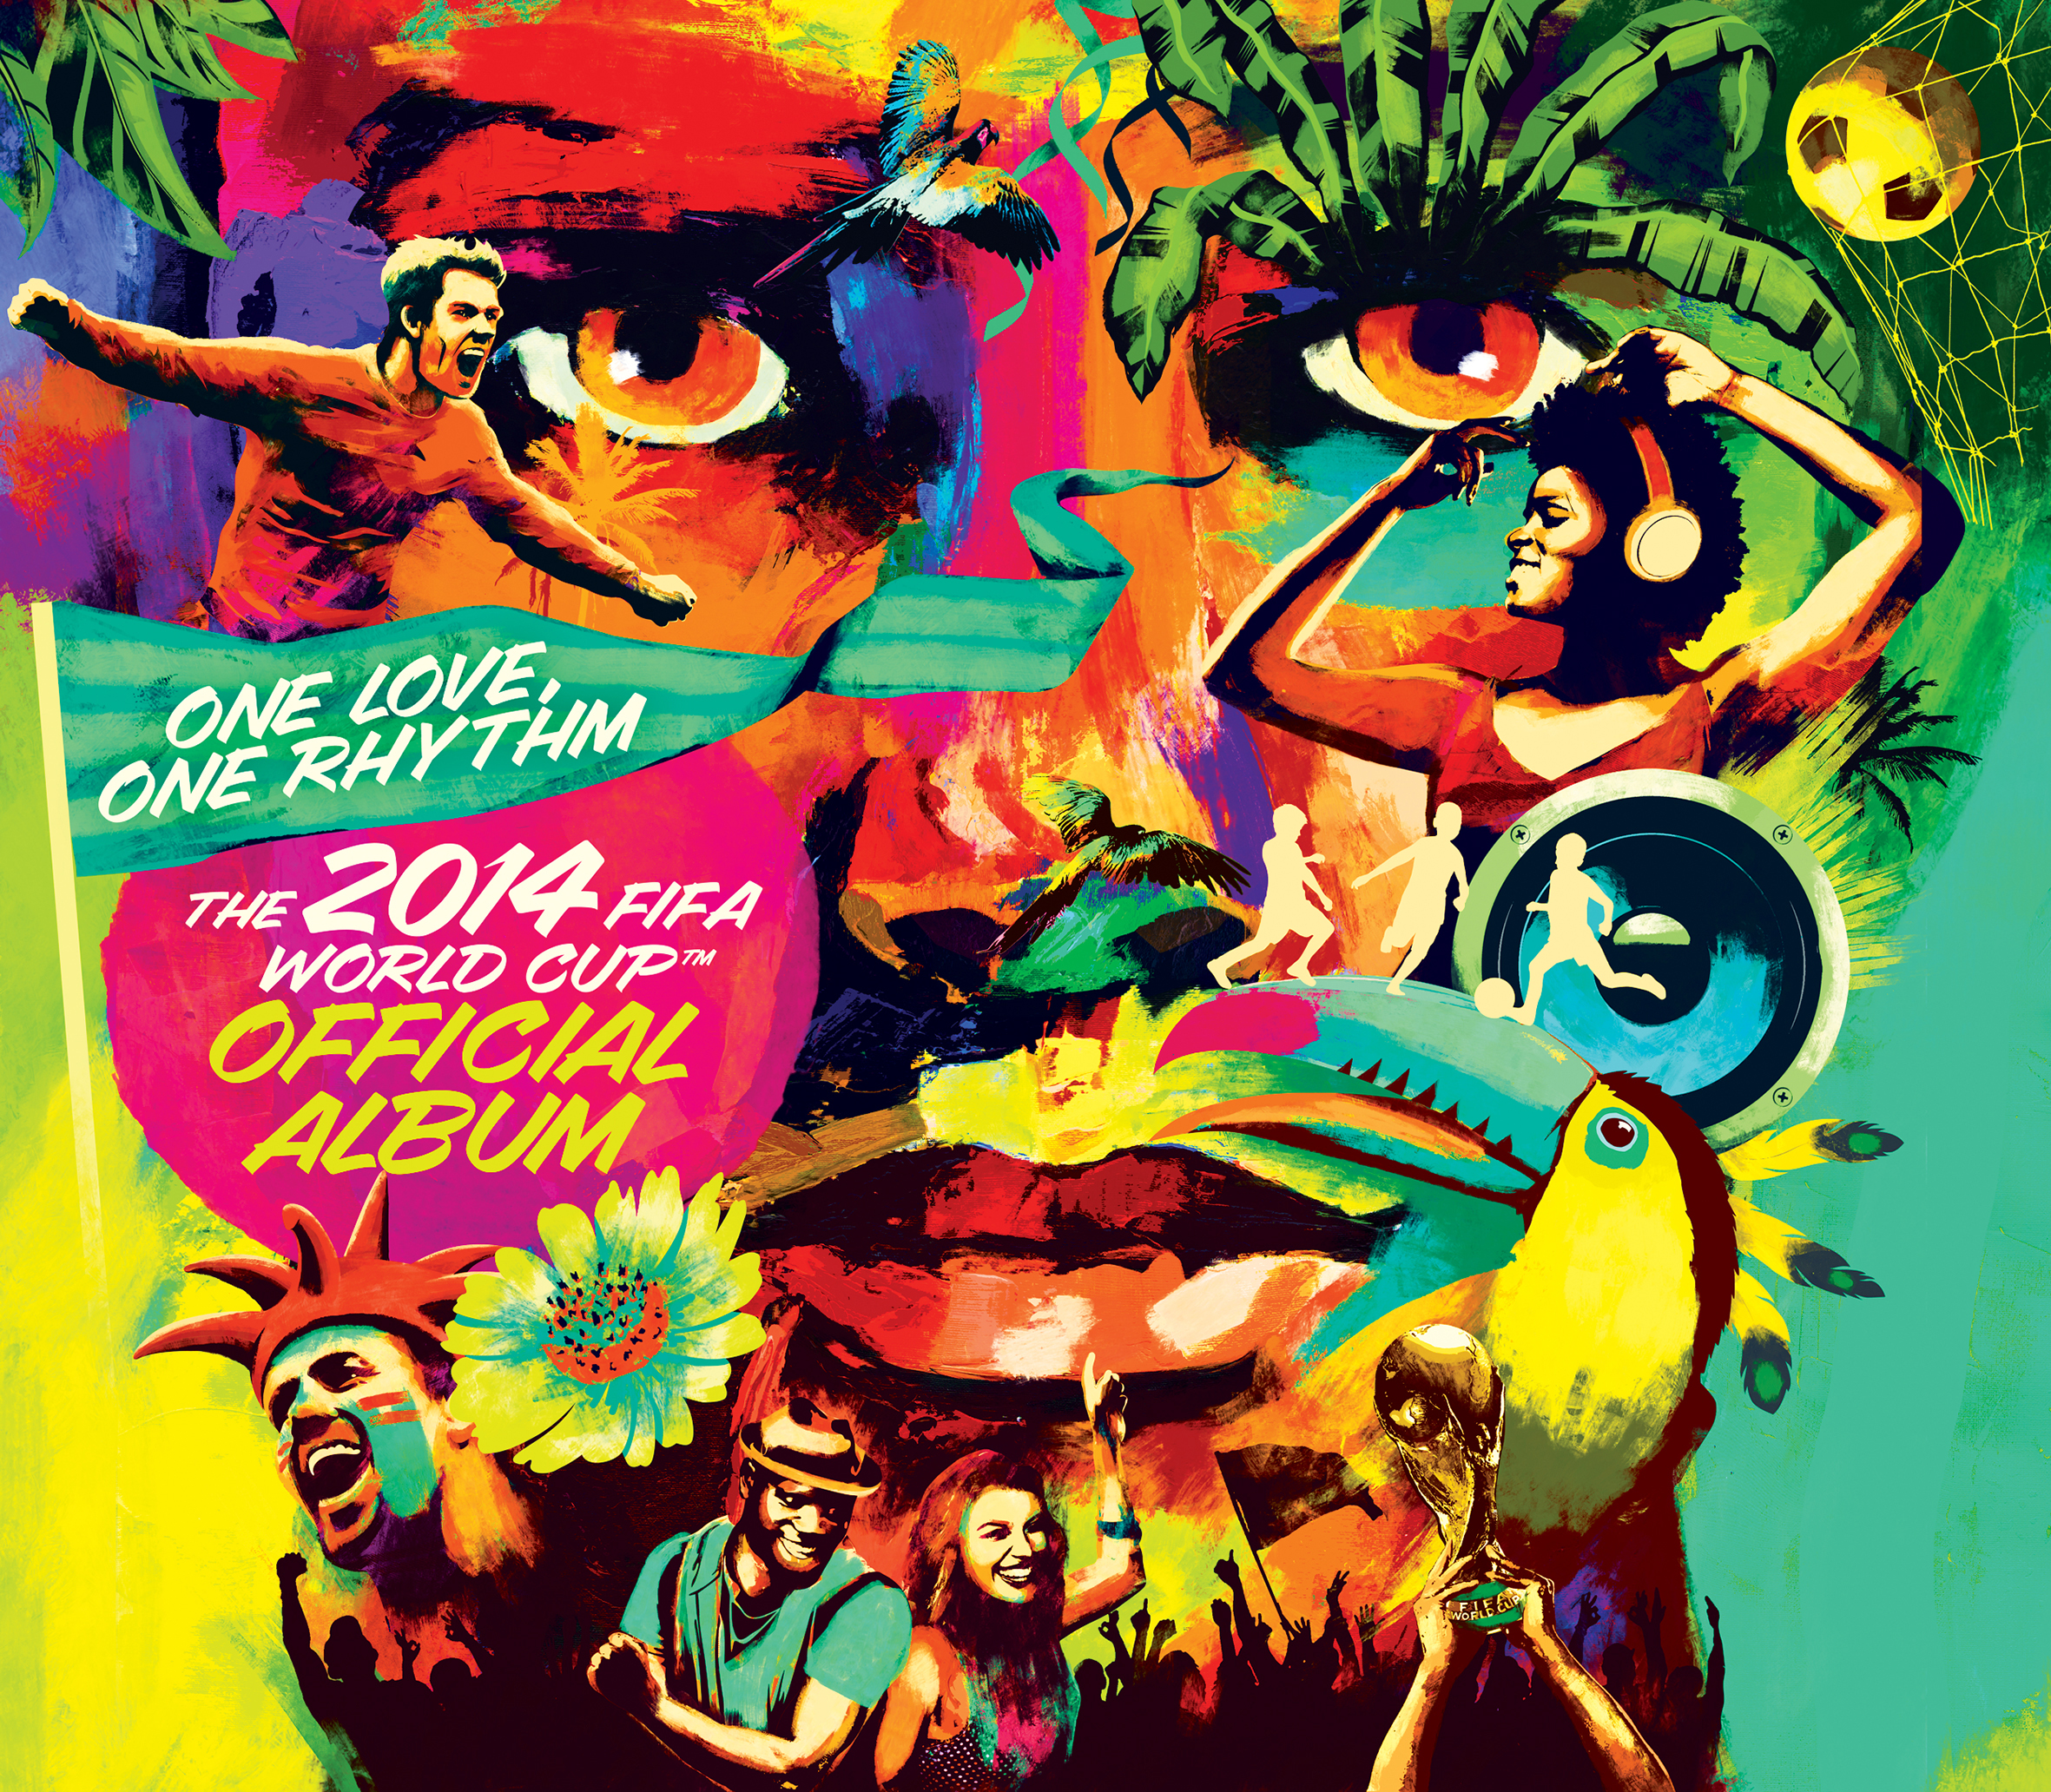 World Cup official CD